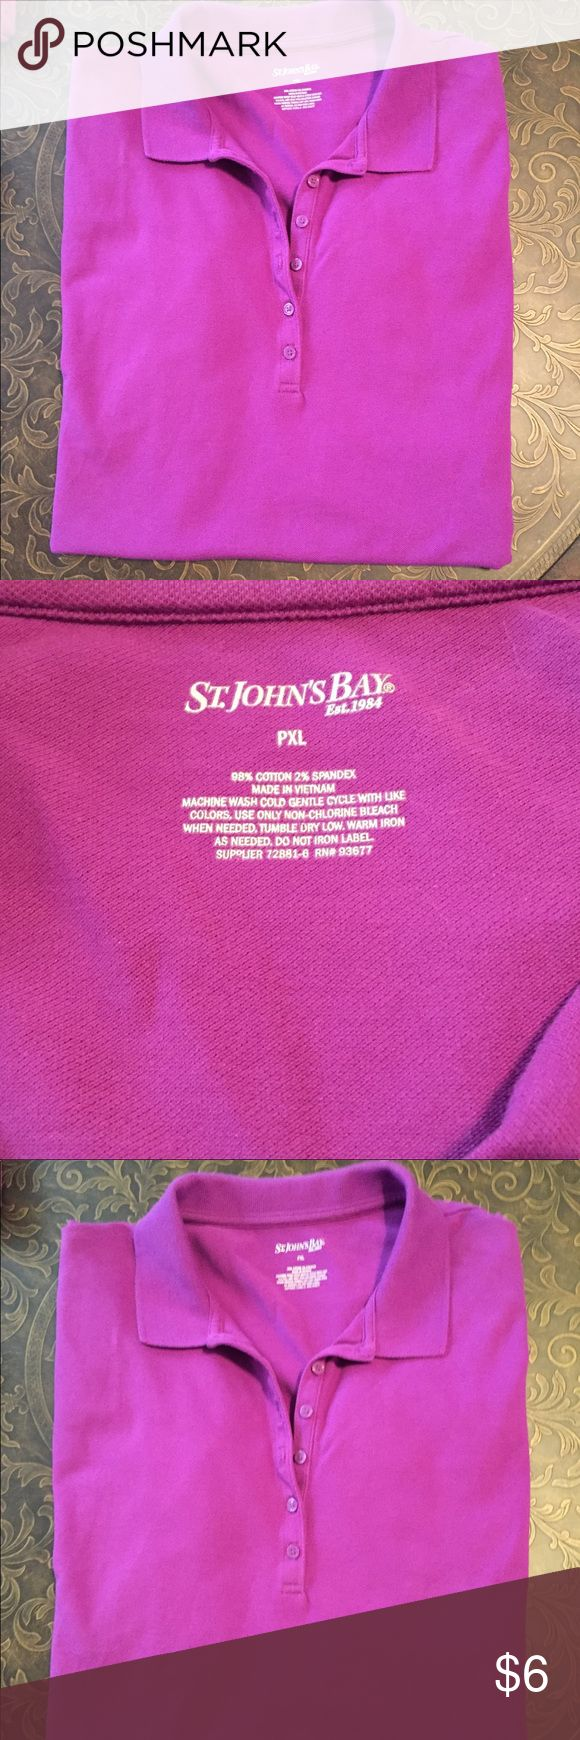 Plum Purple Polo Shirt Purple short sleeve polo shirt. Great everyday shirt made of 98% Cotton 2% Spandex. In good condition- perfect item to bundle & save! St. John's Bay Tops Tees - Short Sleeve